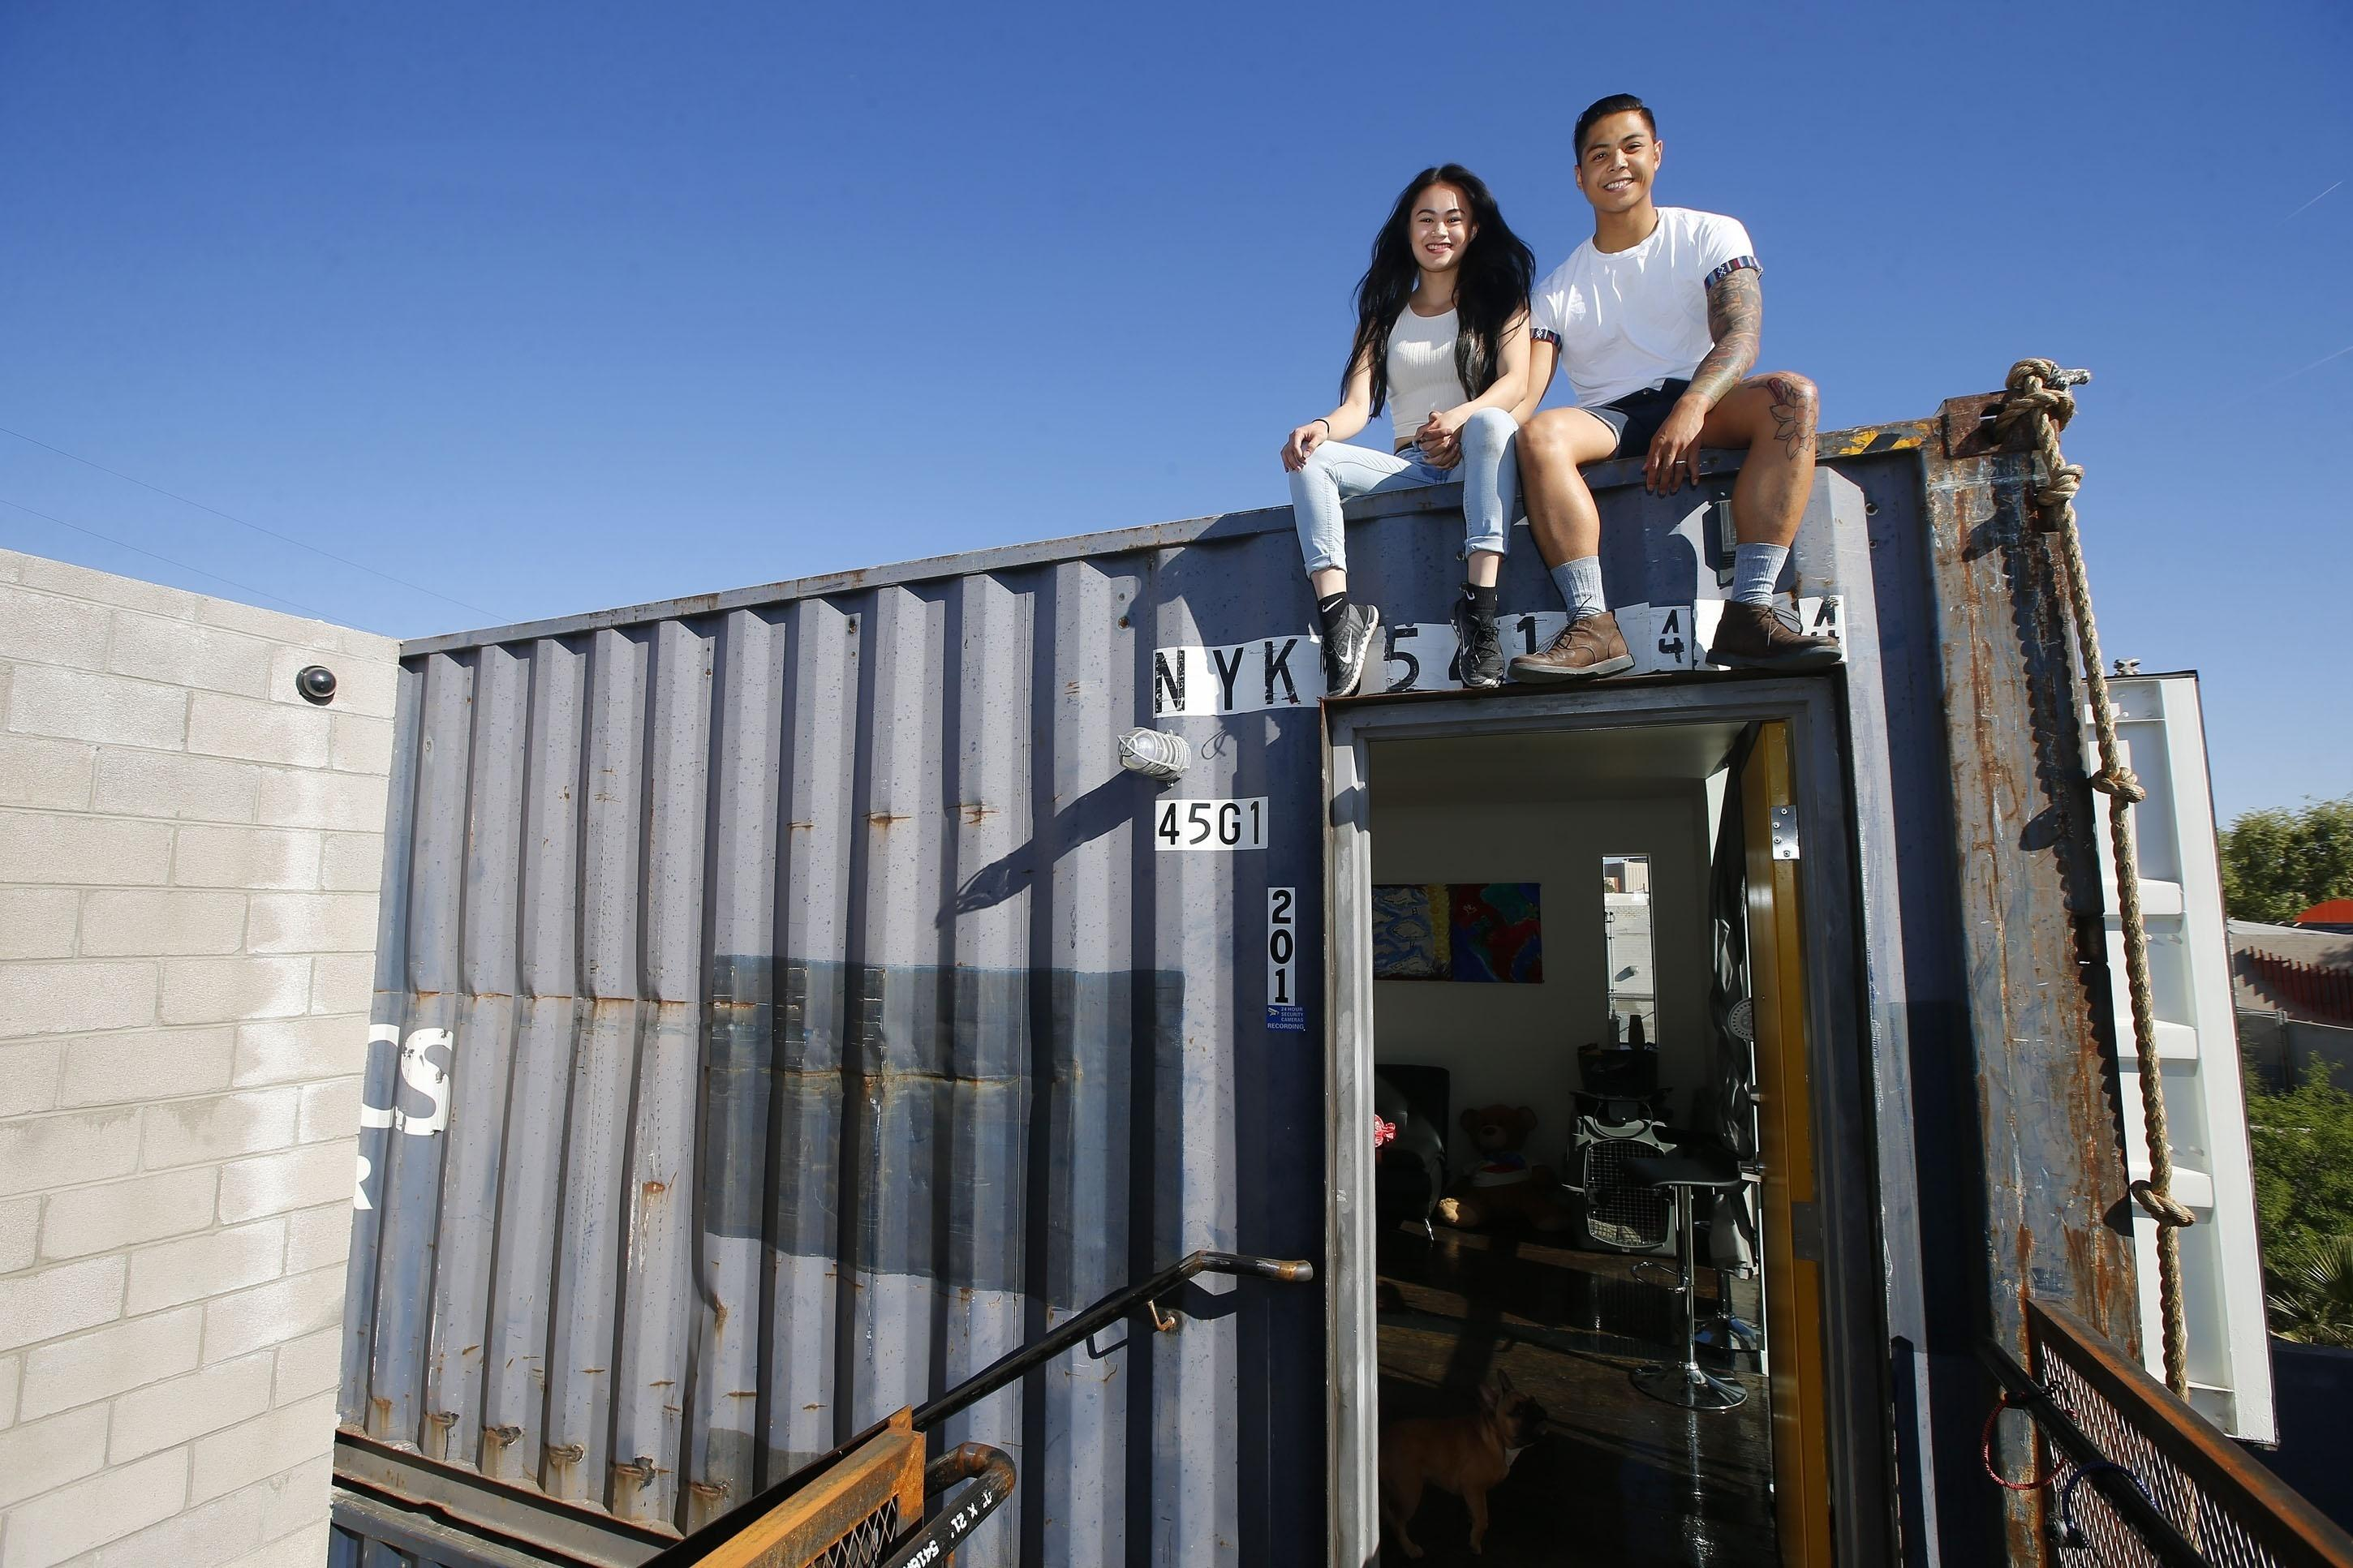 shipping containers offer welcome homes in phoenix - washington times